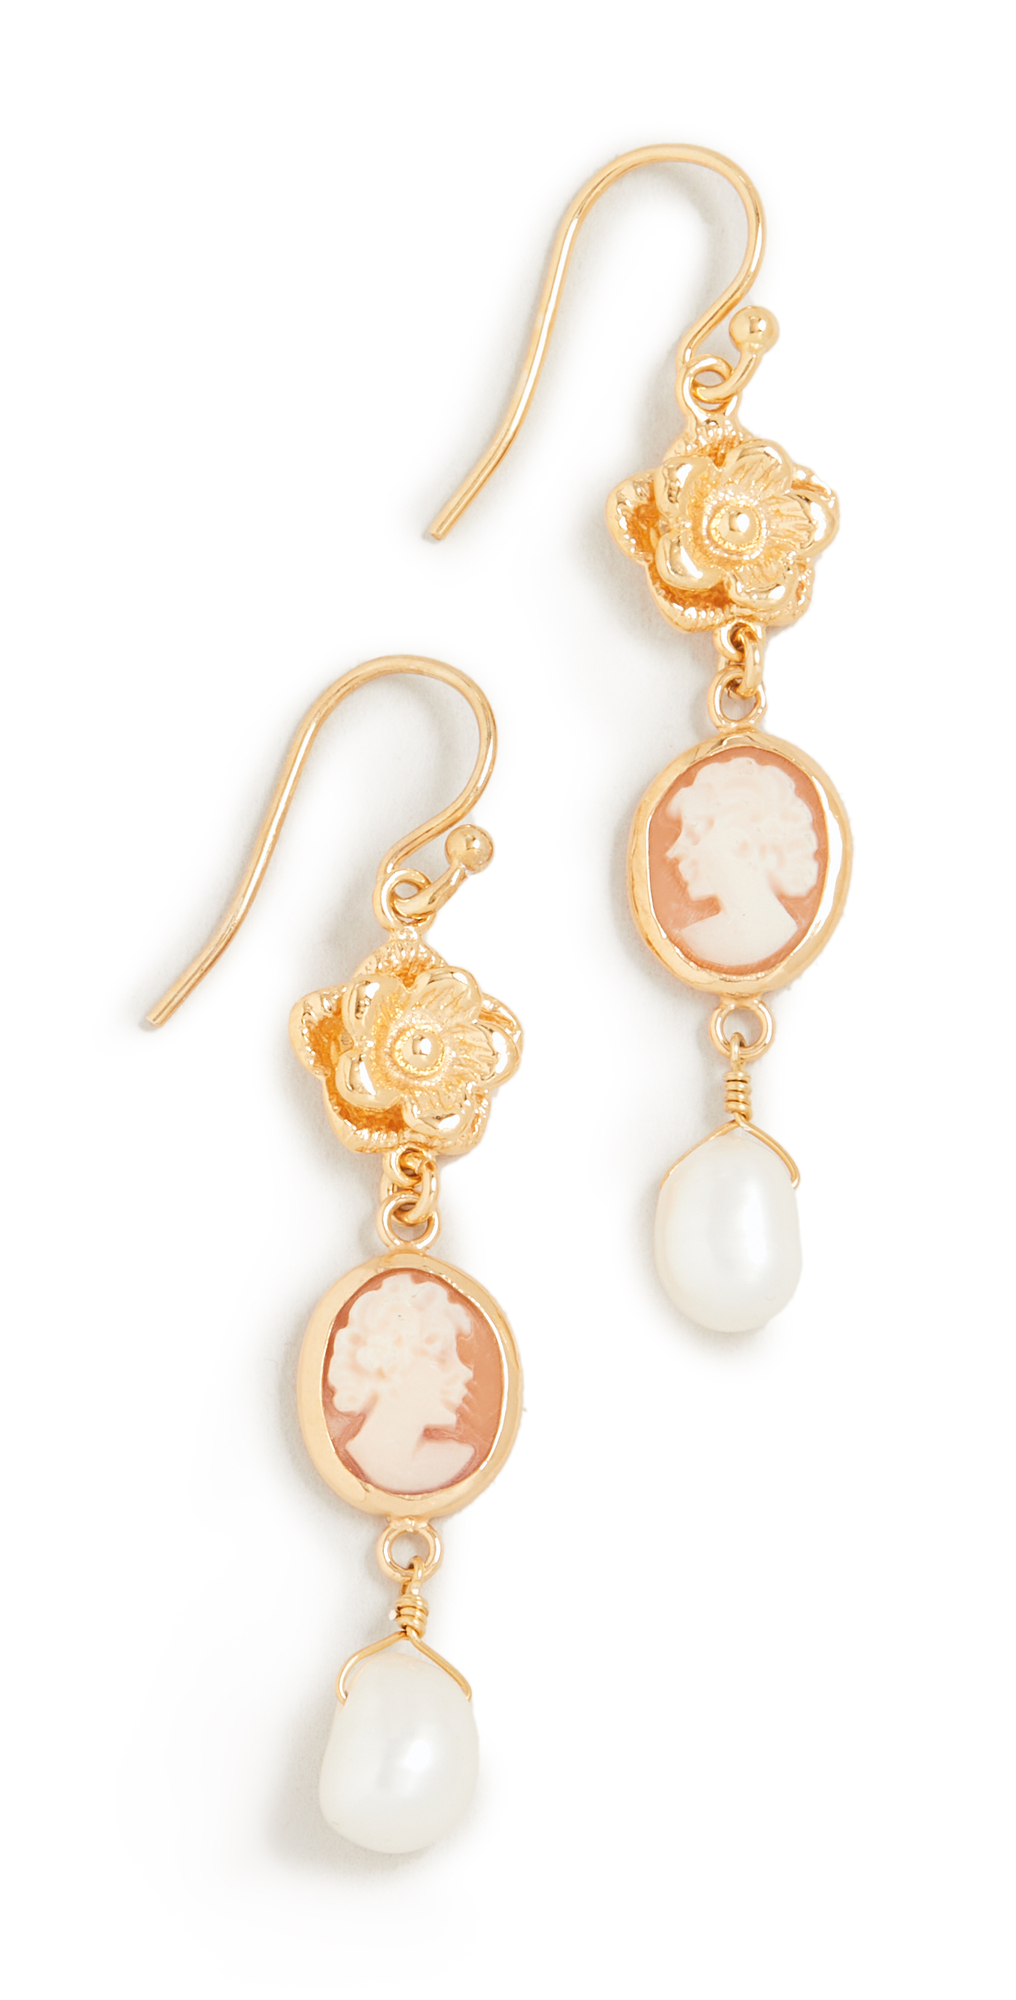 Cameo and Flower Drop Earrings